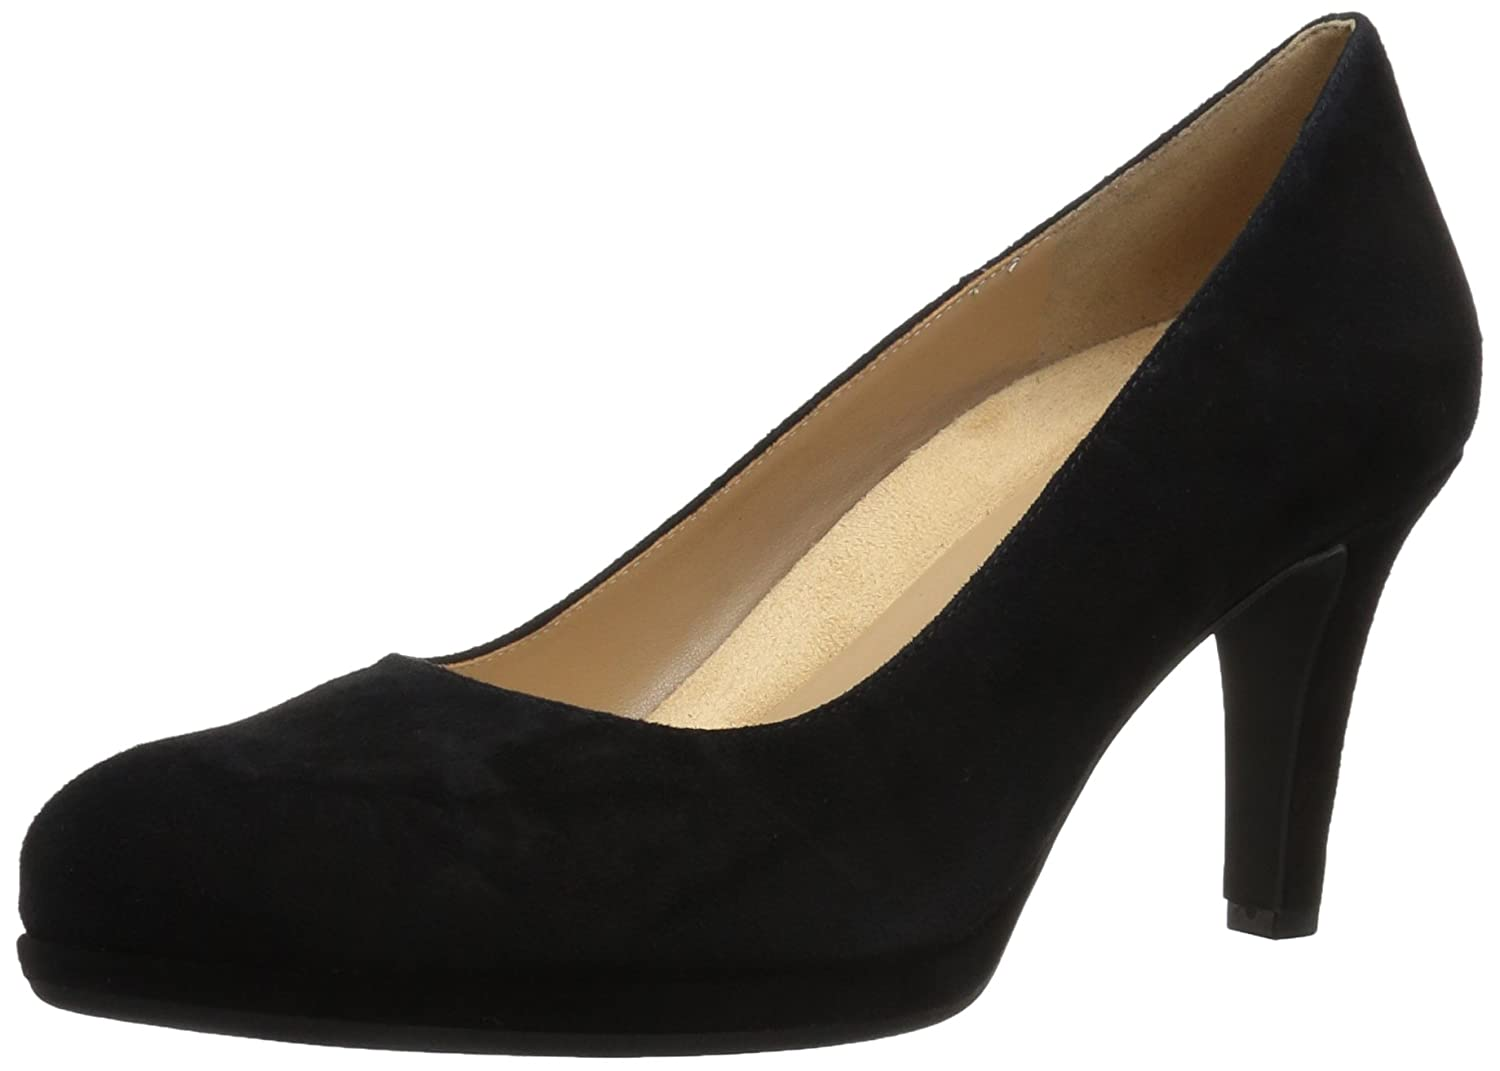 Naturalizer Women's Michelle Dress Pump B01NANPVH2 7.5 B(M) US|Black